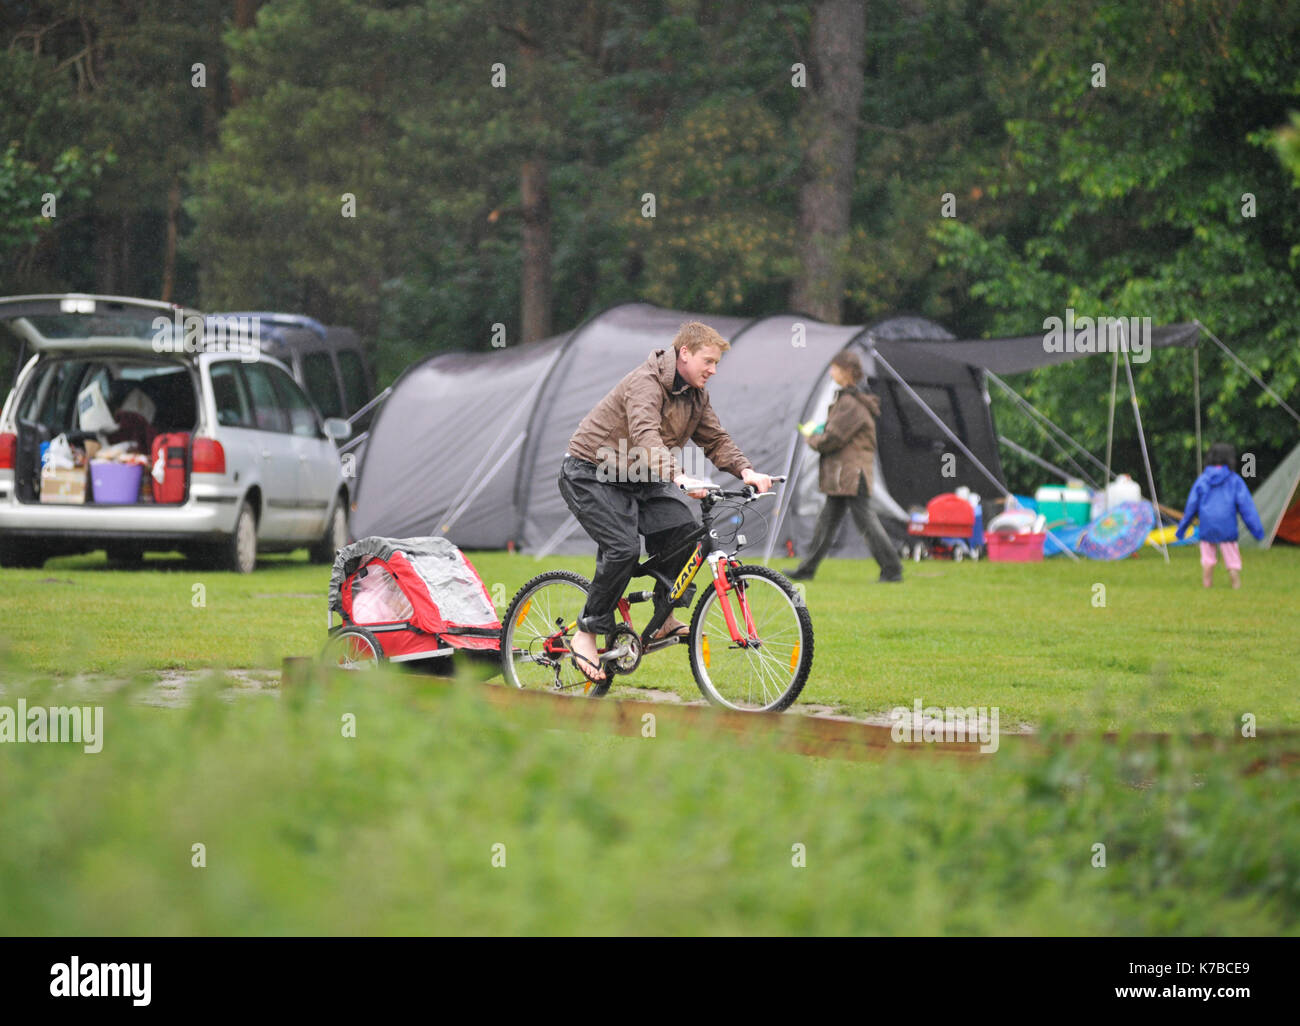 father towindg child behind bike in small trailer - Stock Image